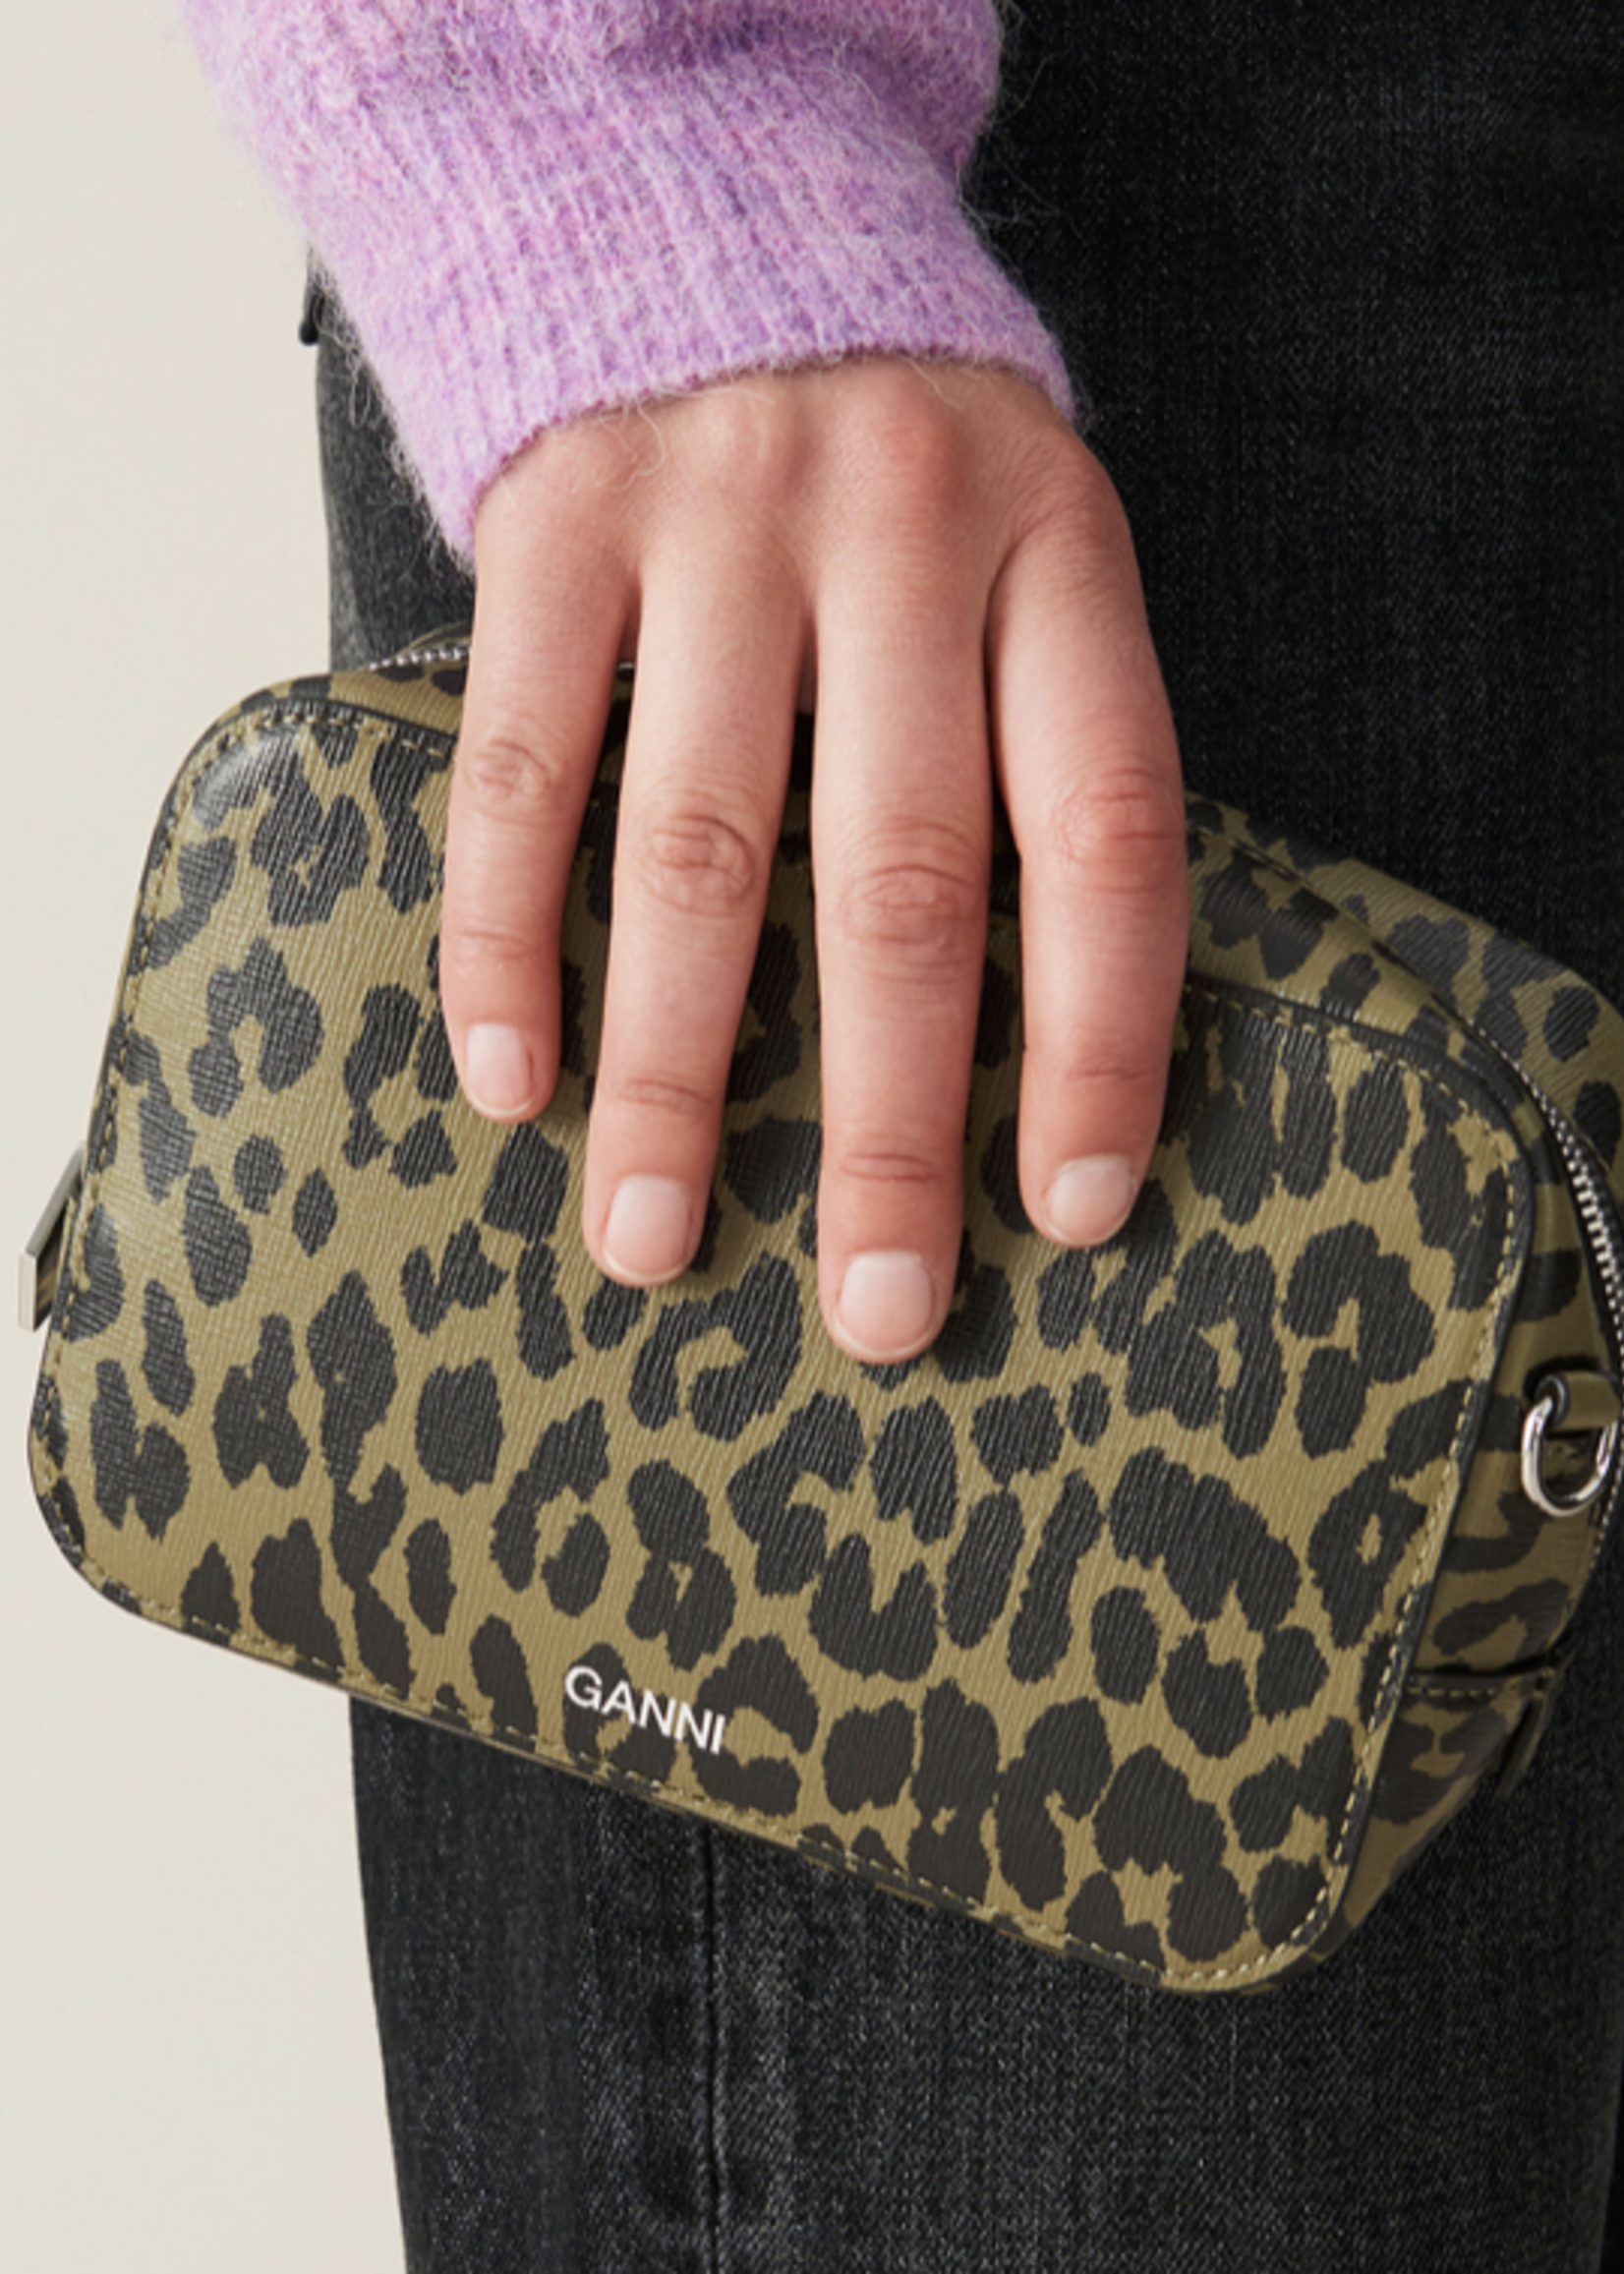 GANNI GANNI Small Recycled Leather bag in Olive Leopard